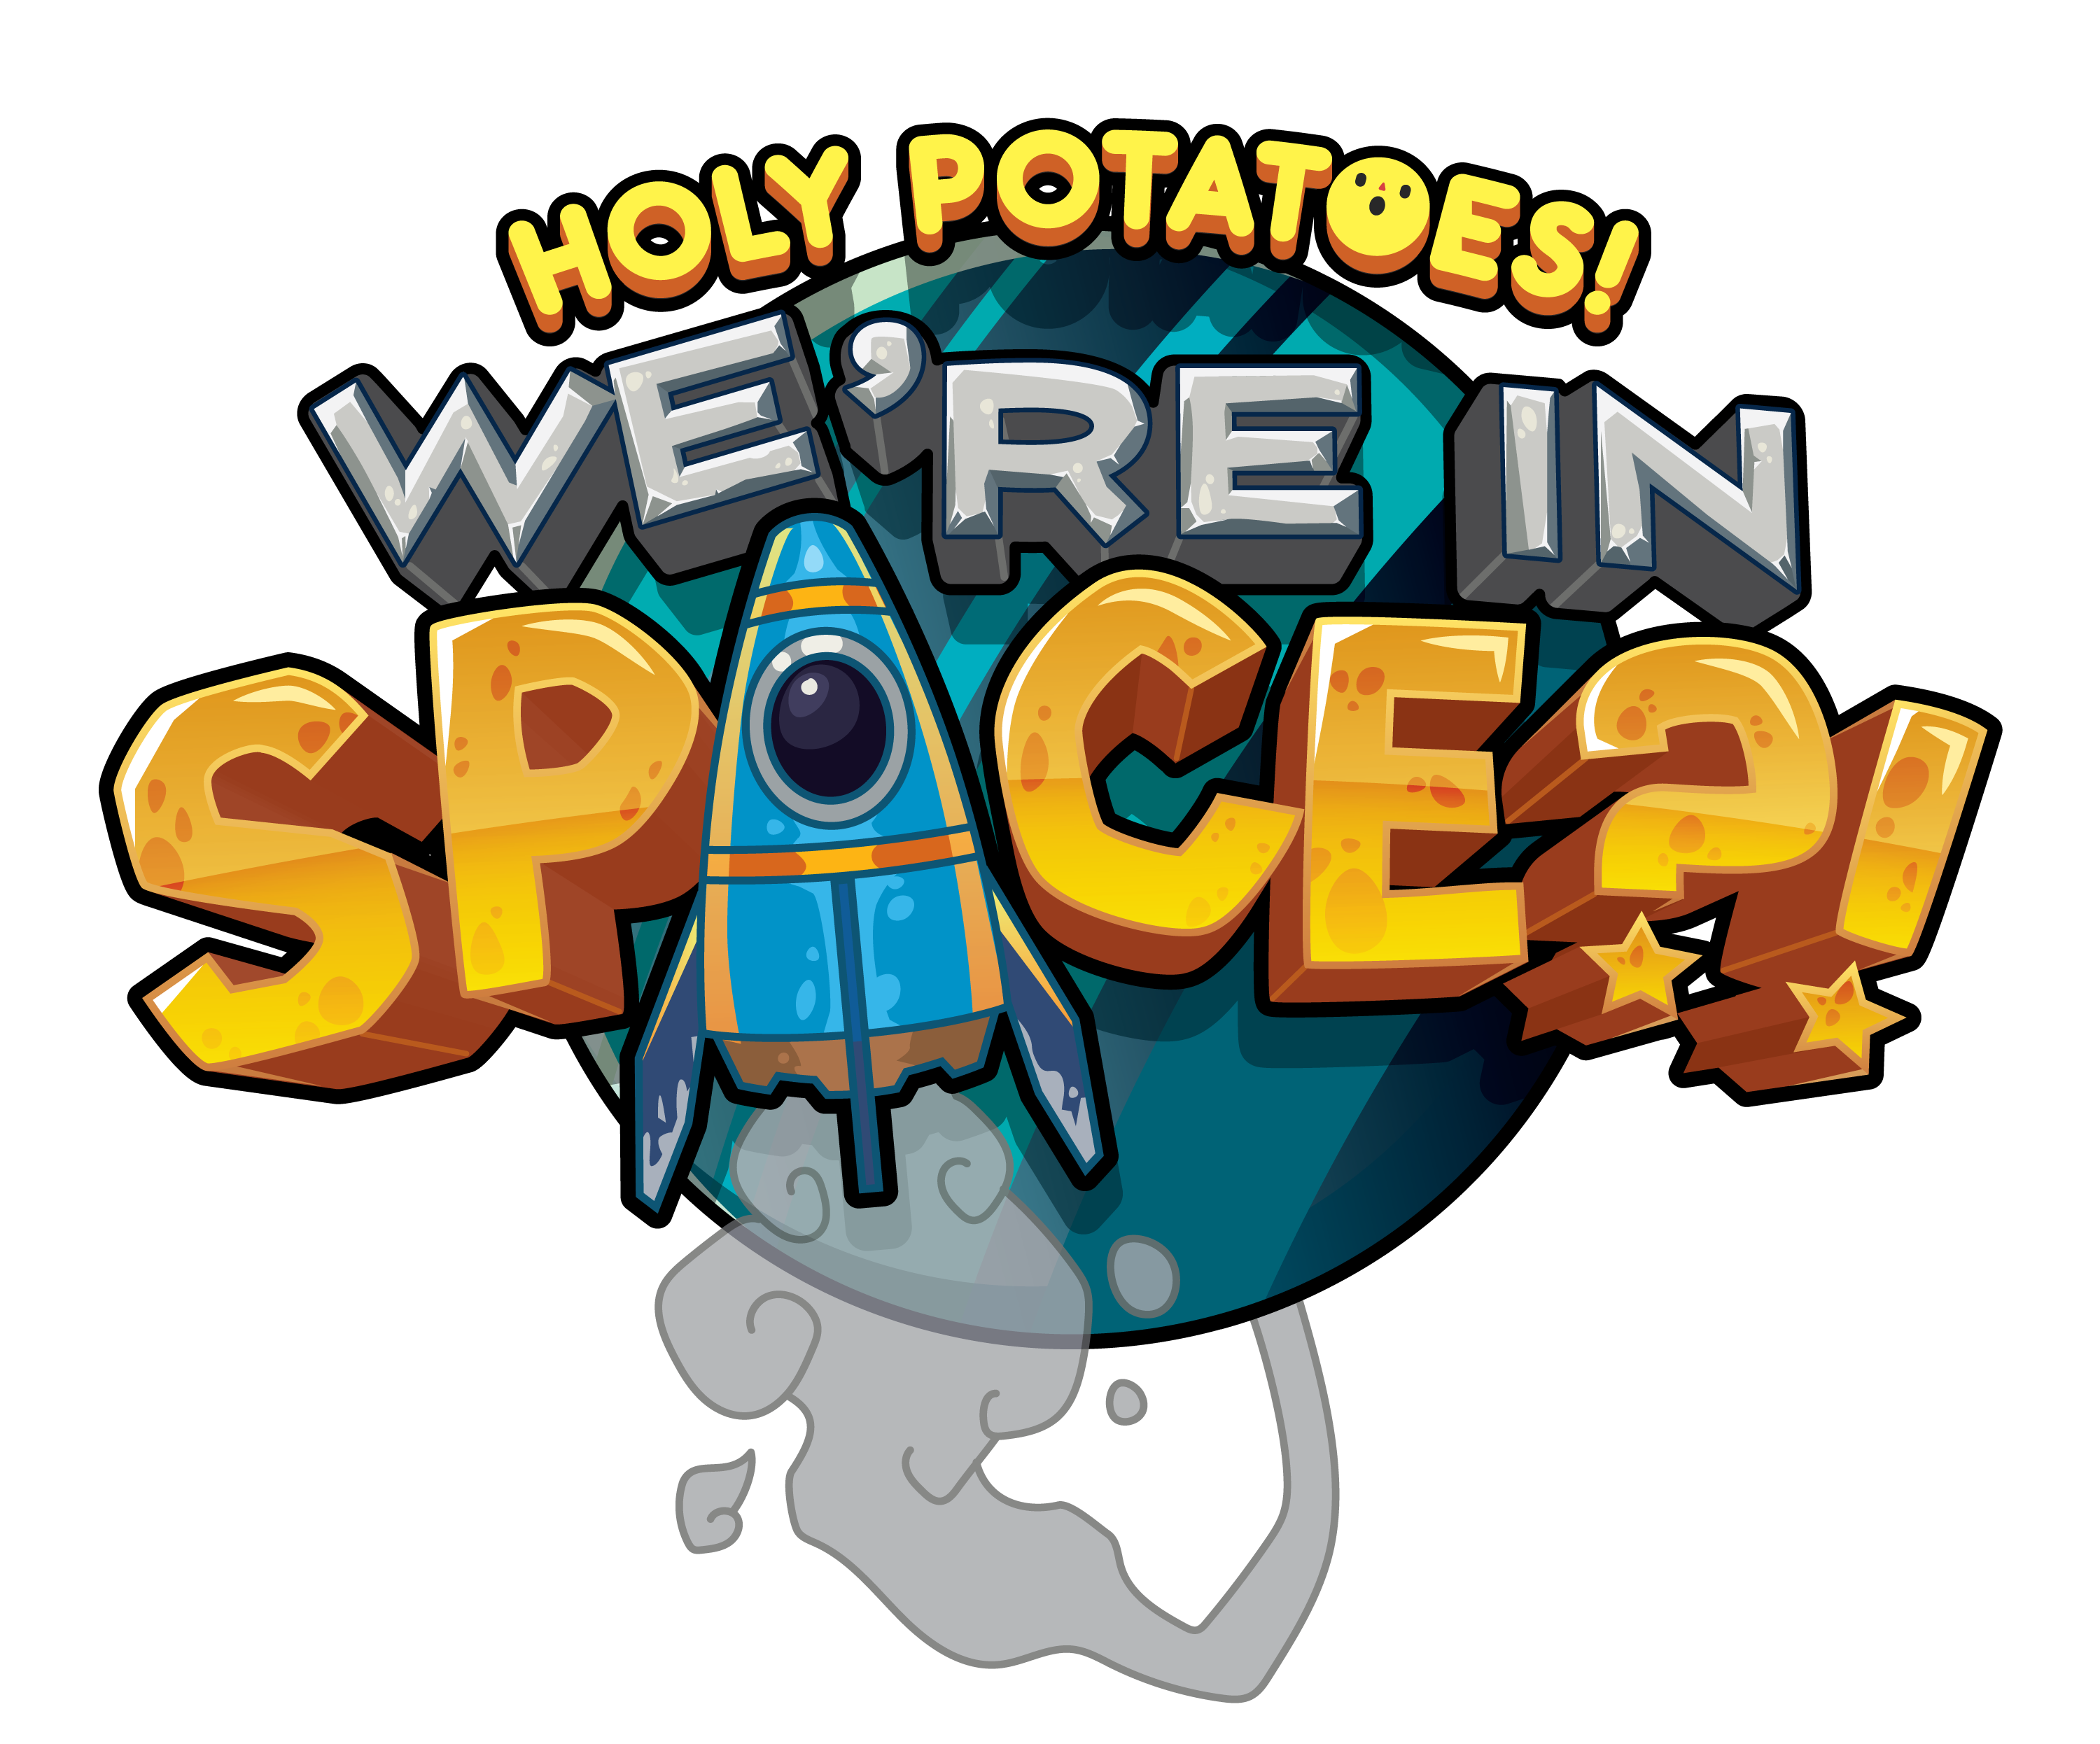 Holy potatoes we re. Galaxy clipart space logo